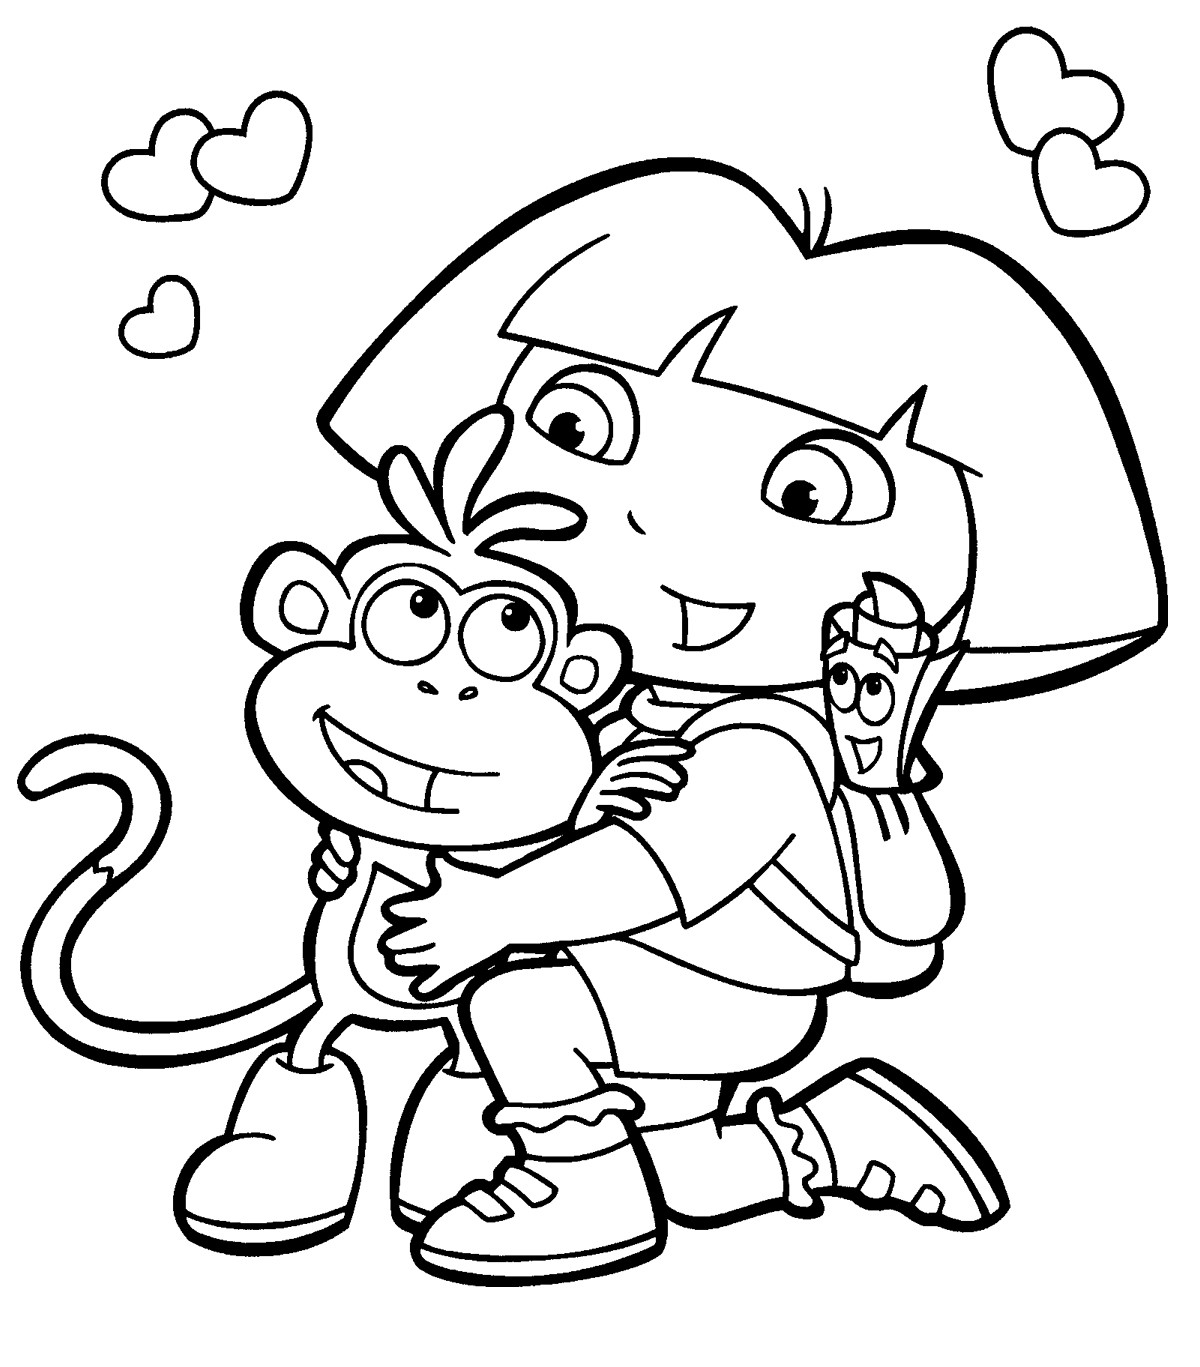 Dora Coloring Pages For Girls  Dora the Explorer Coloring Pages 15